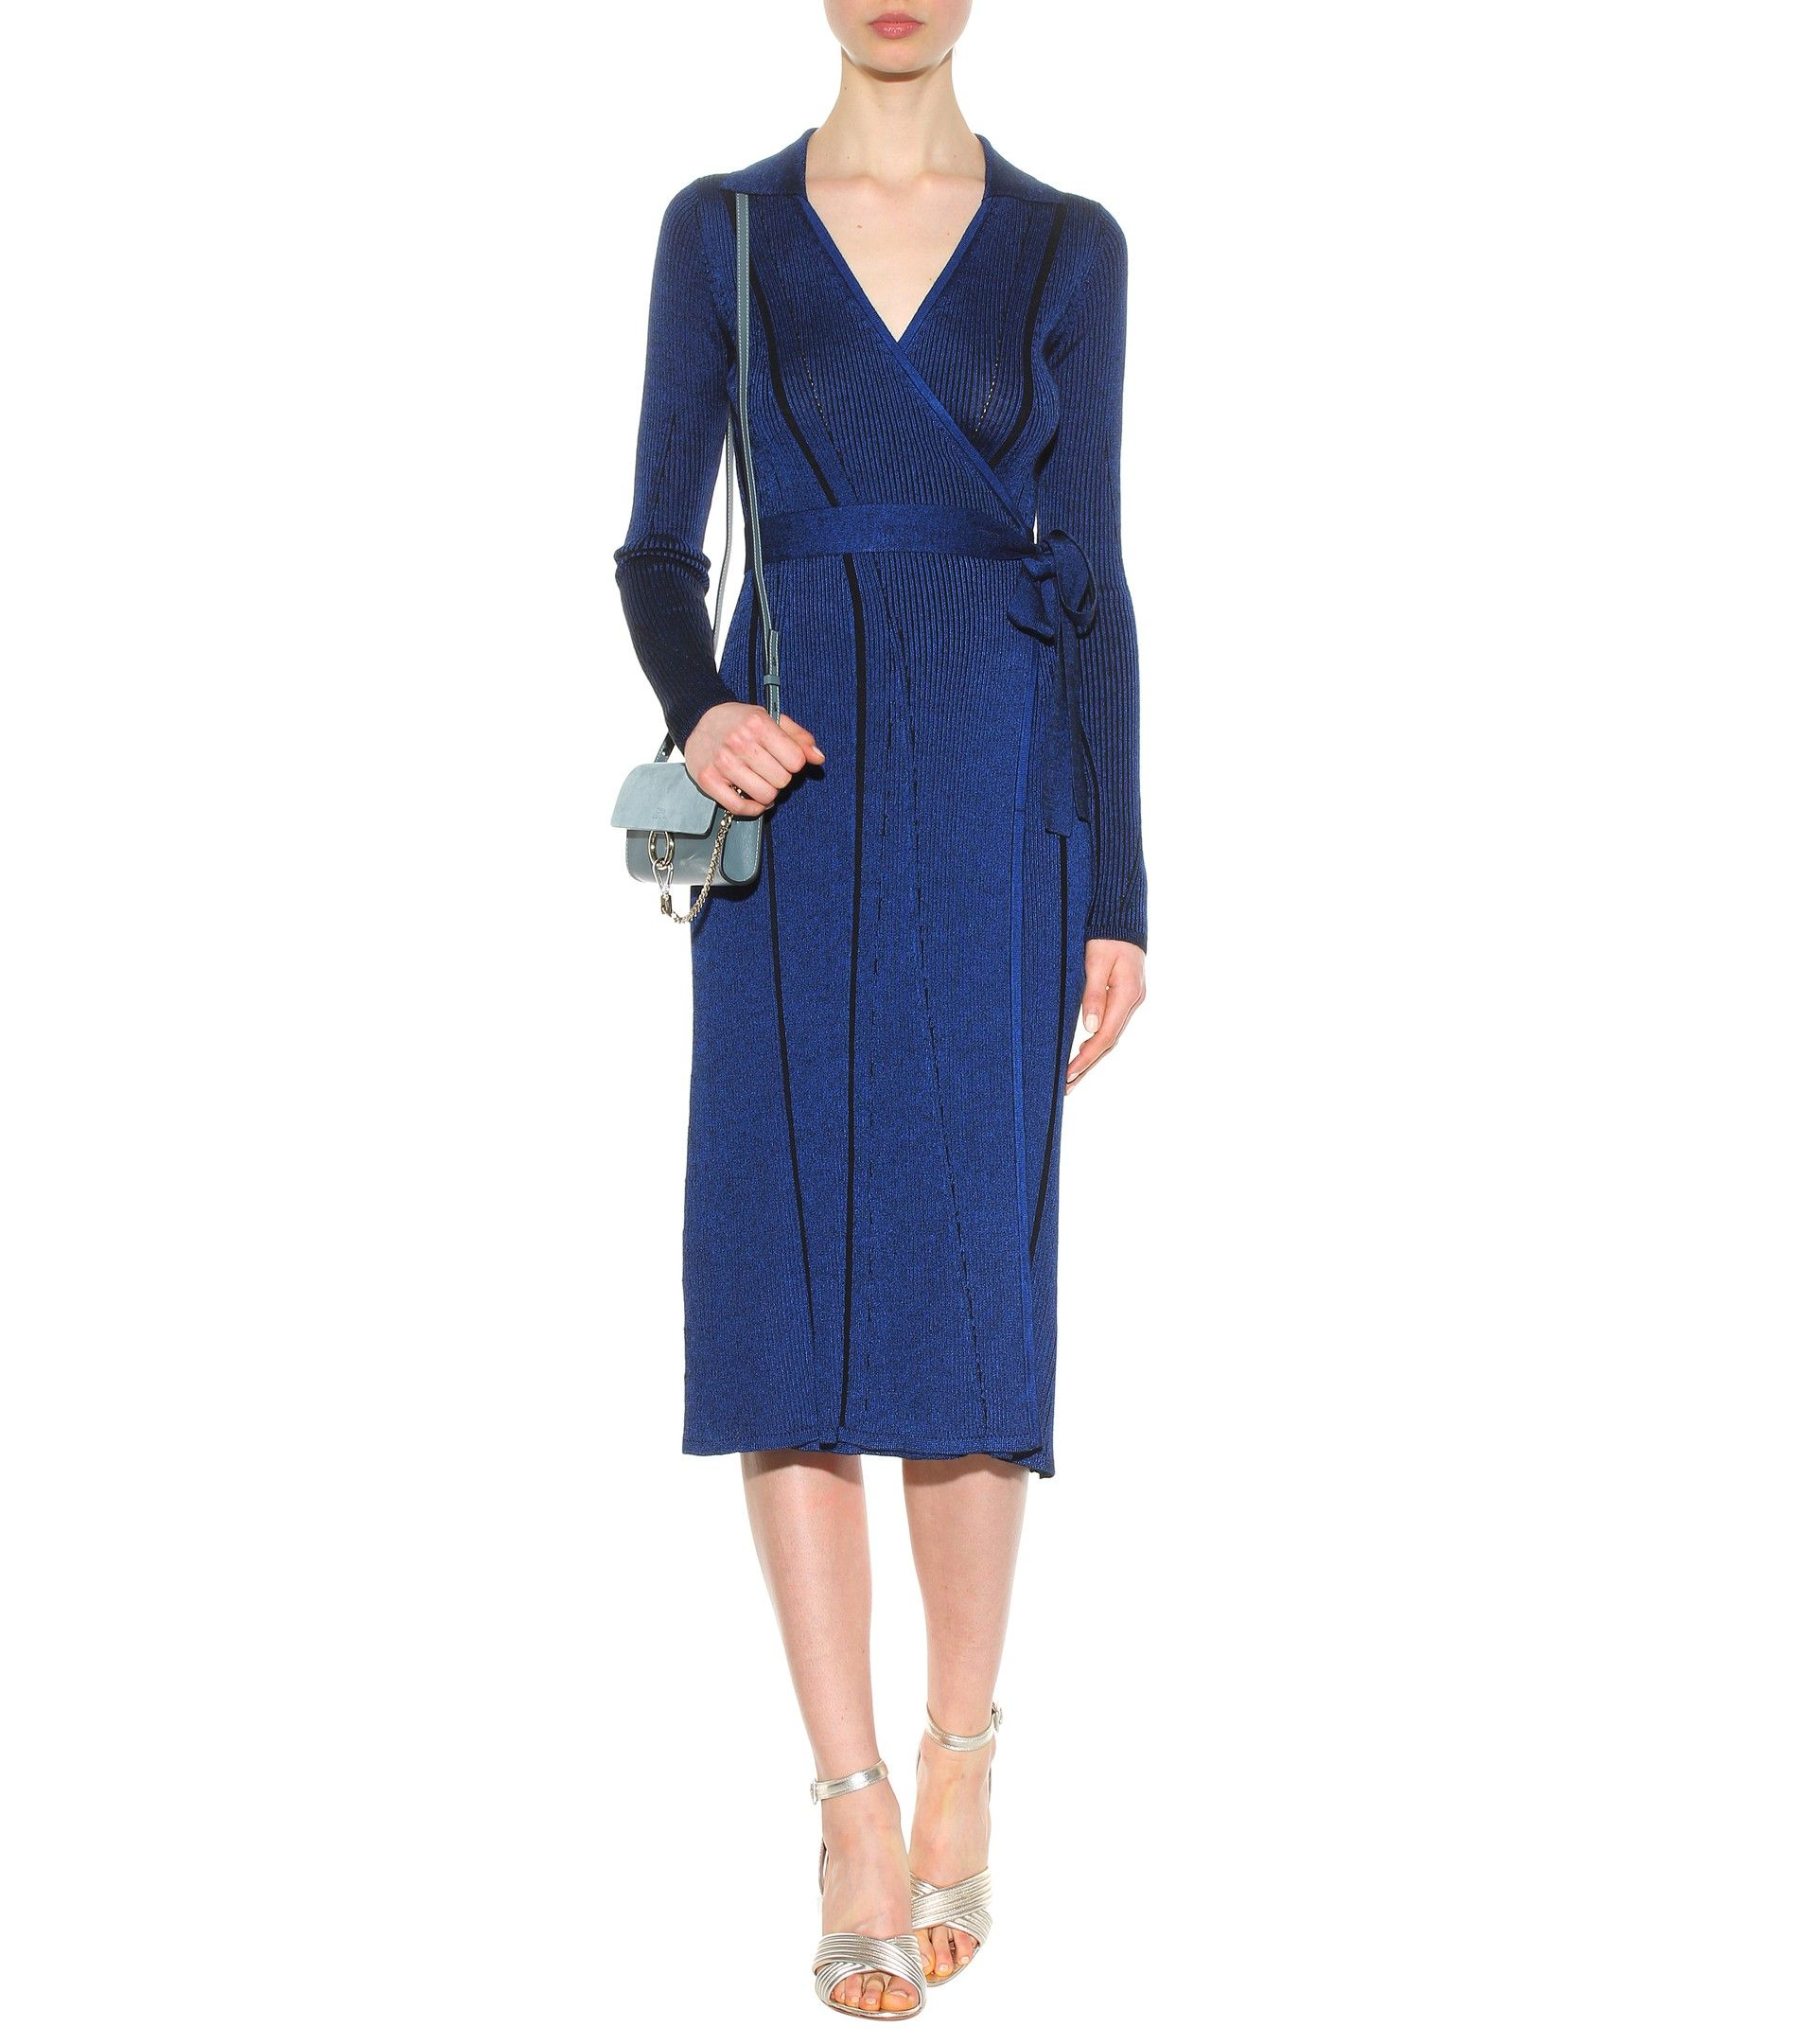 Diane Von Furstenberg Woman Wool-blend Dress Cobalt Blue Size 4 Diane Von Fürstenberg